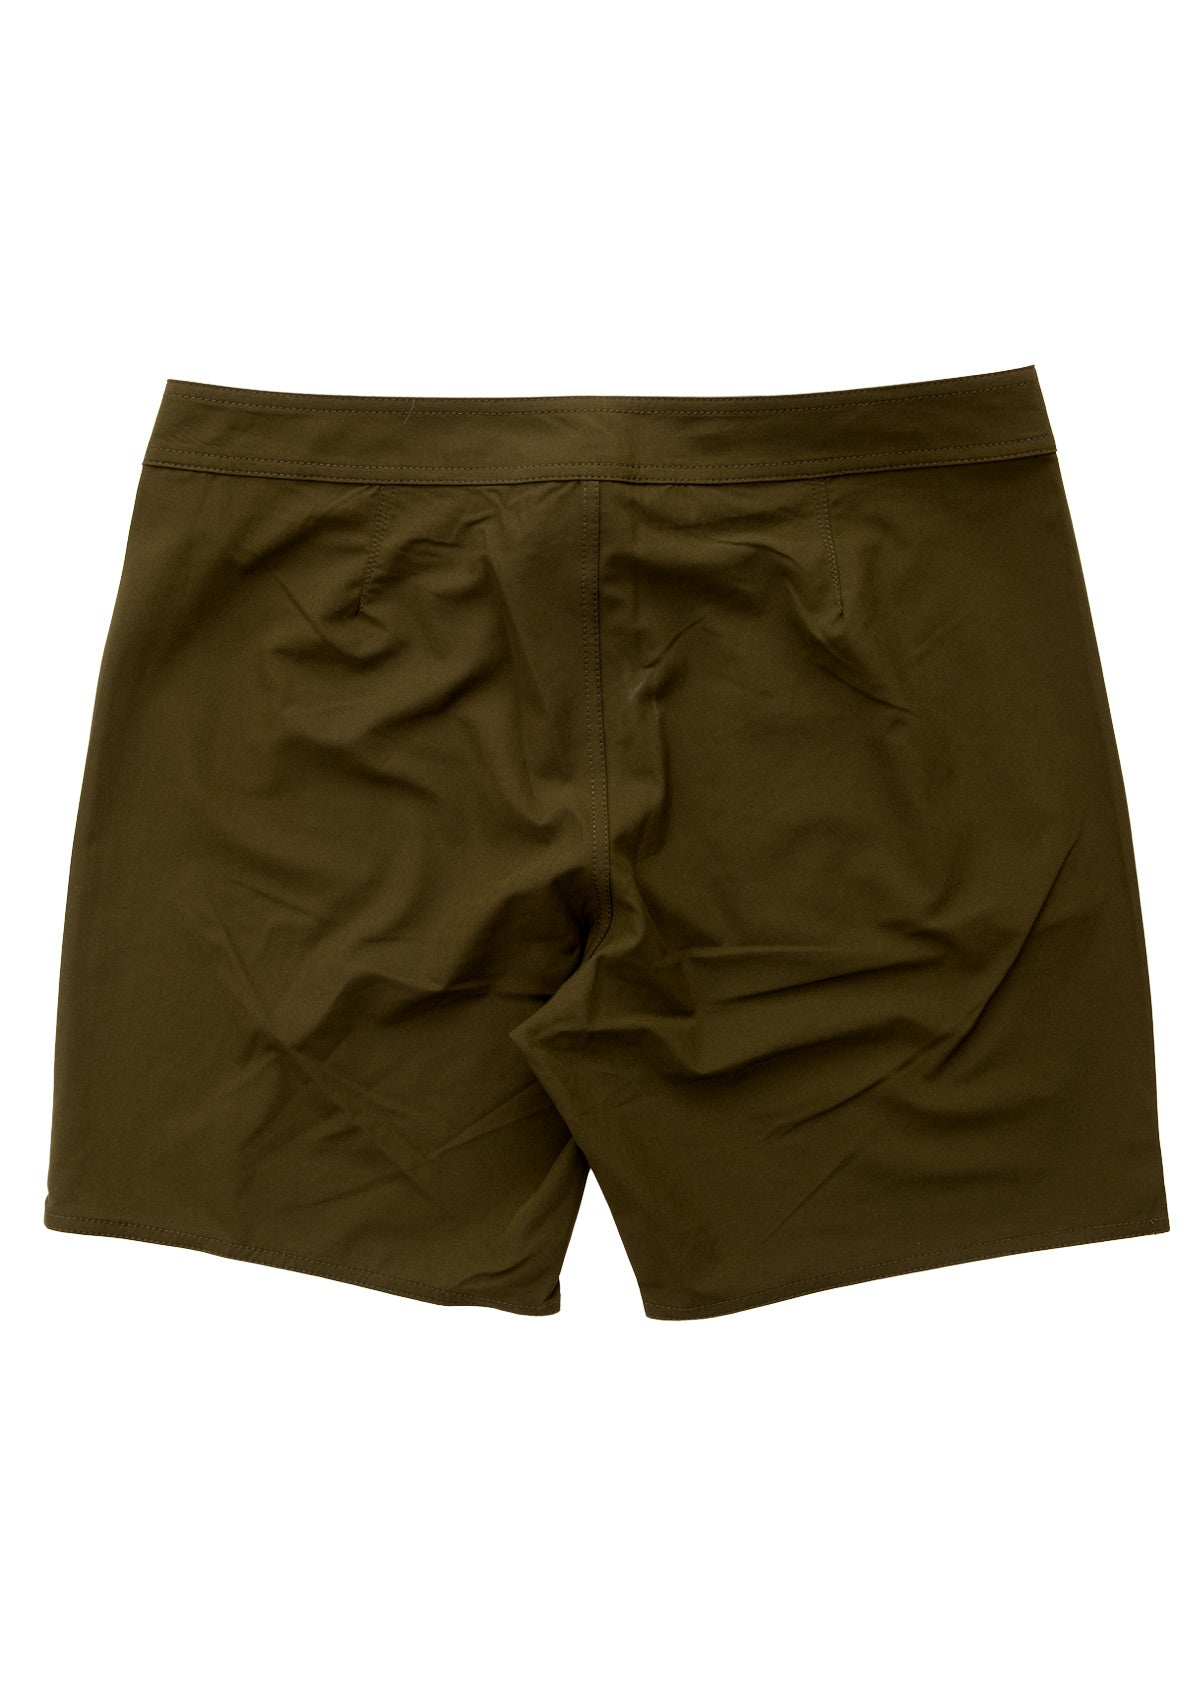 needessentials side mens surfing boardshorts non branded olive swimming